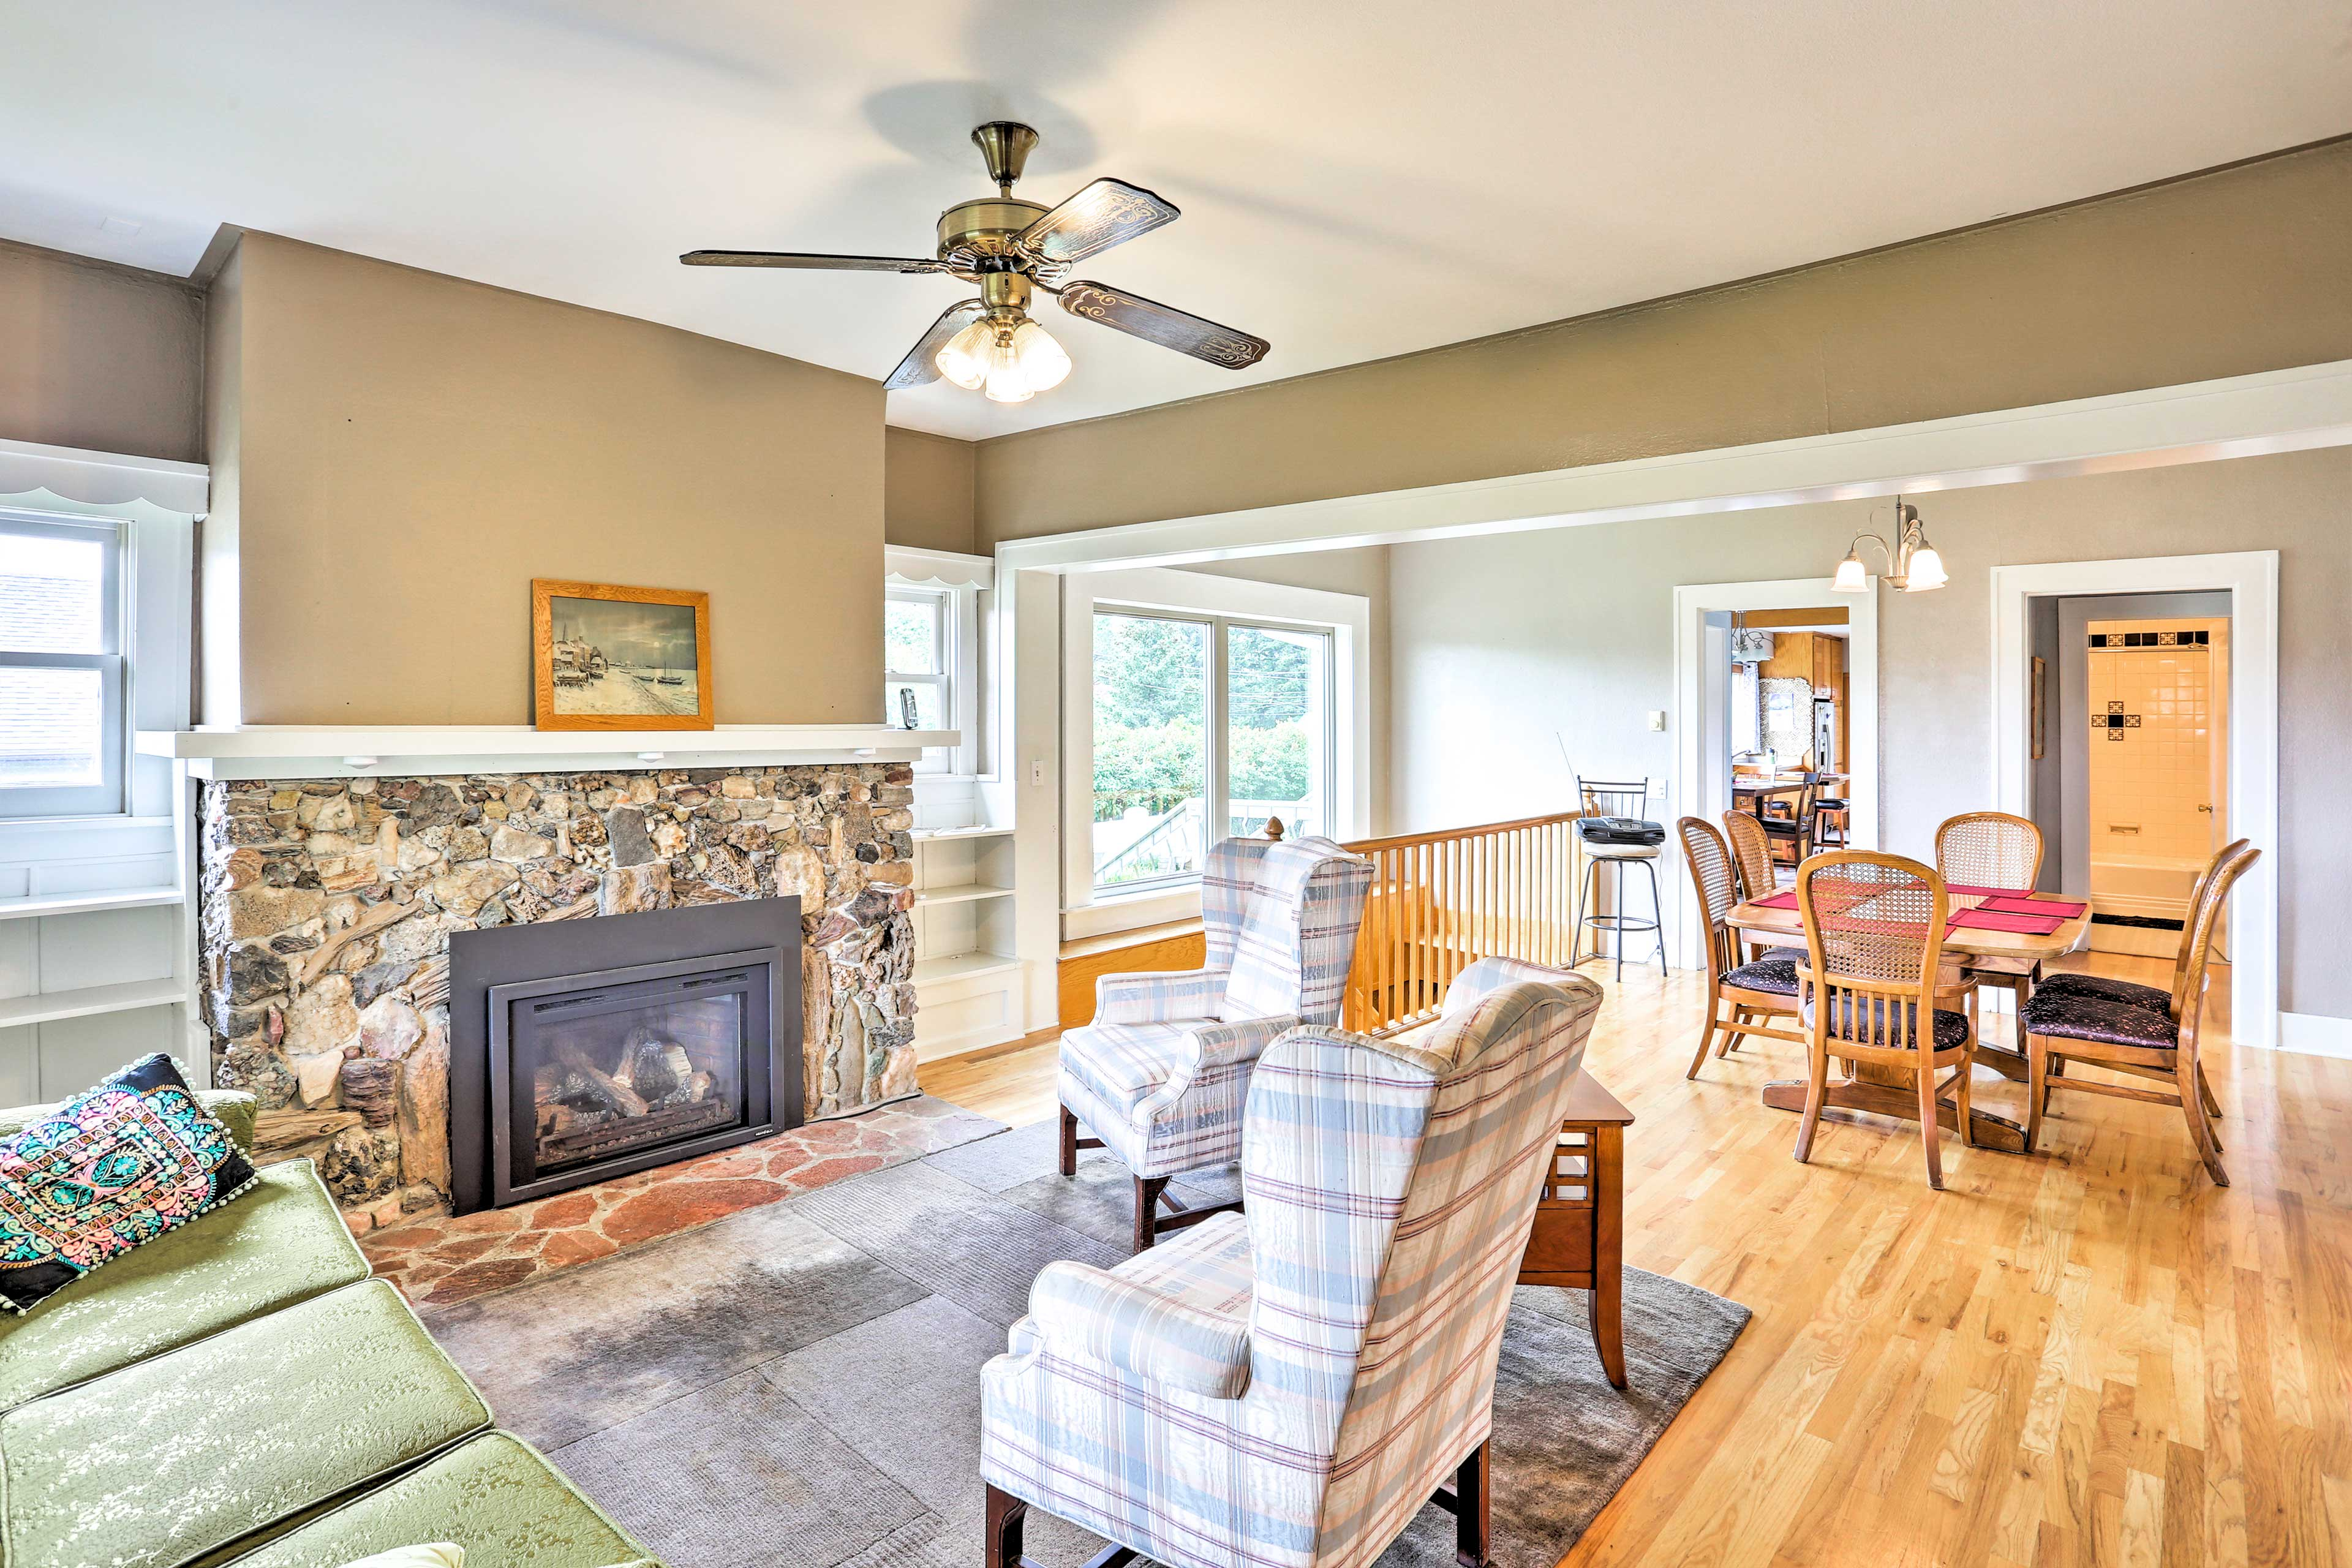 This 4-bedroom, 3-bath house includes multiple living spaces.